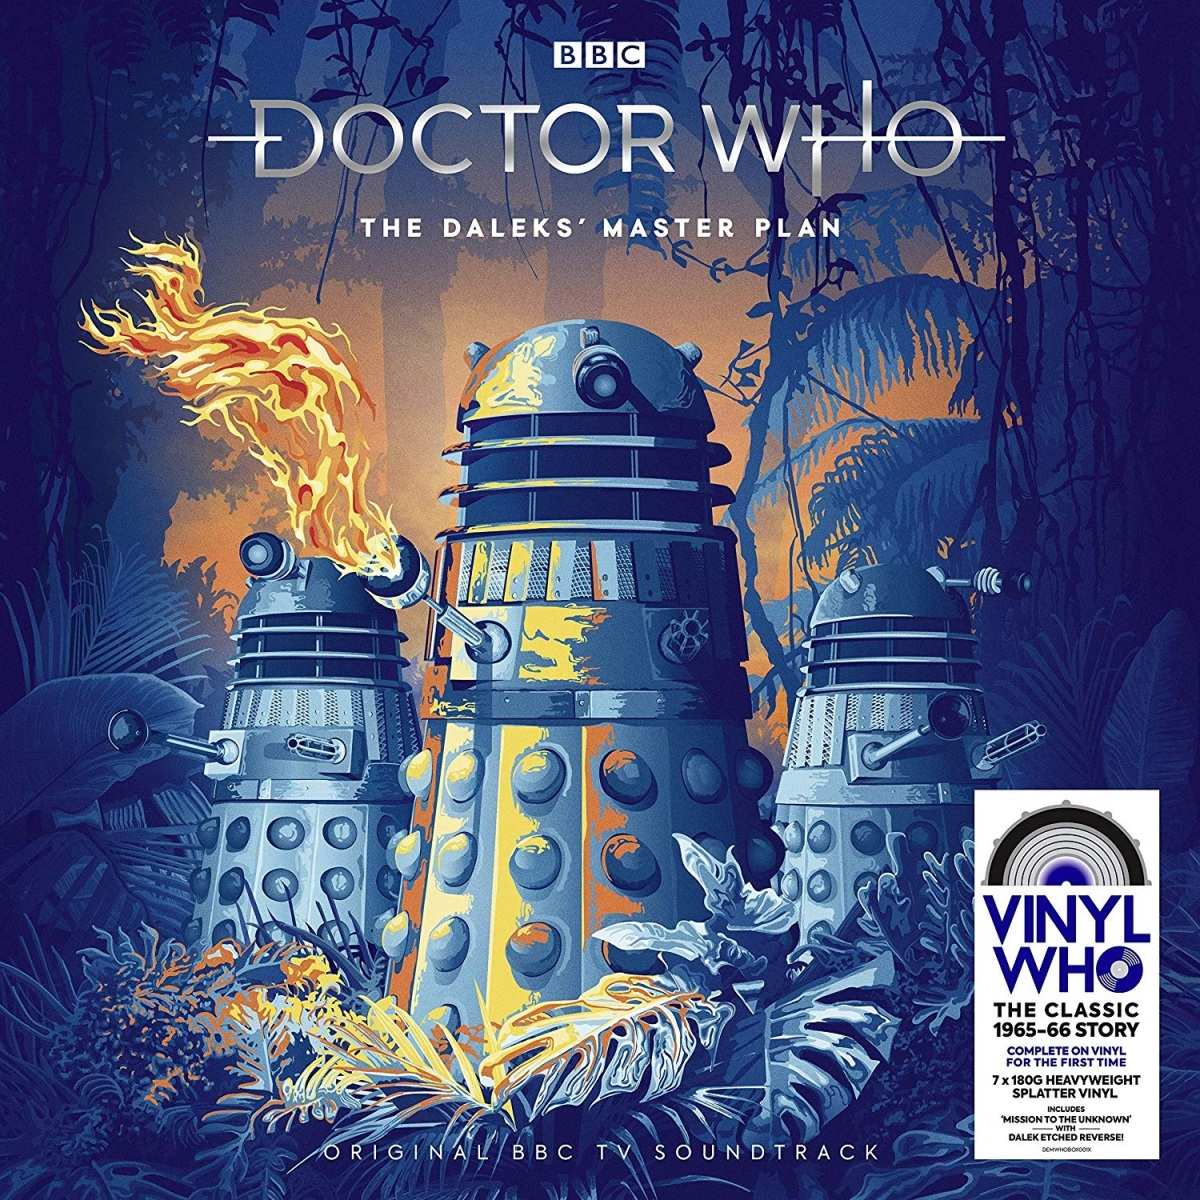 The Dalek Masterplan comes to vinyl